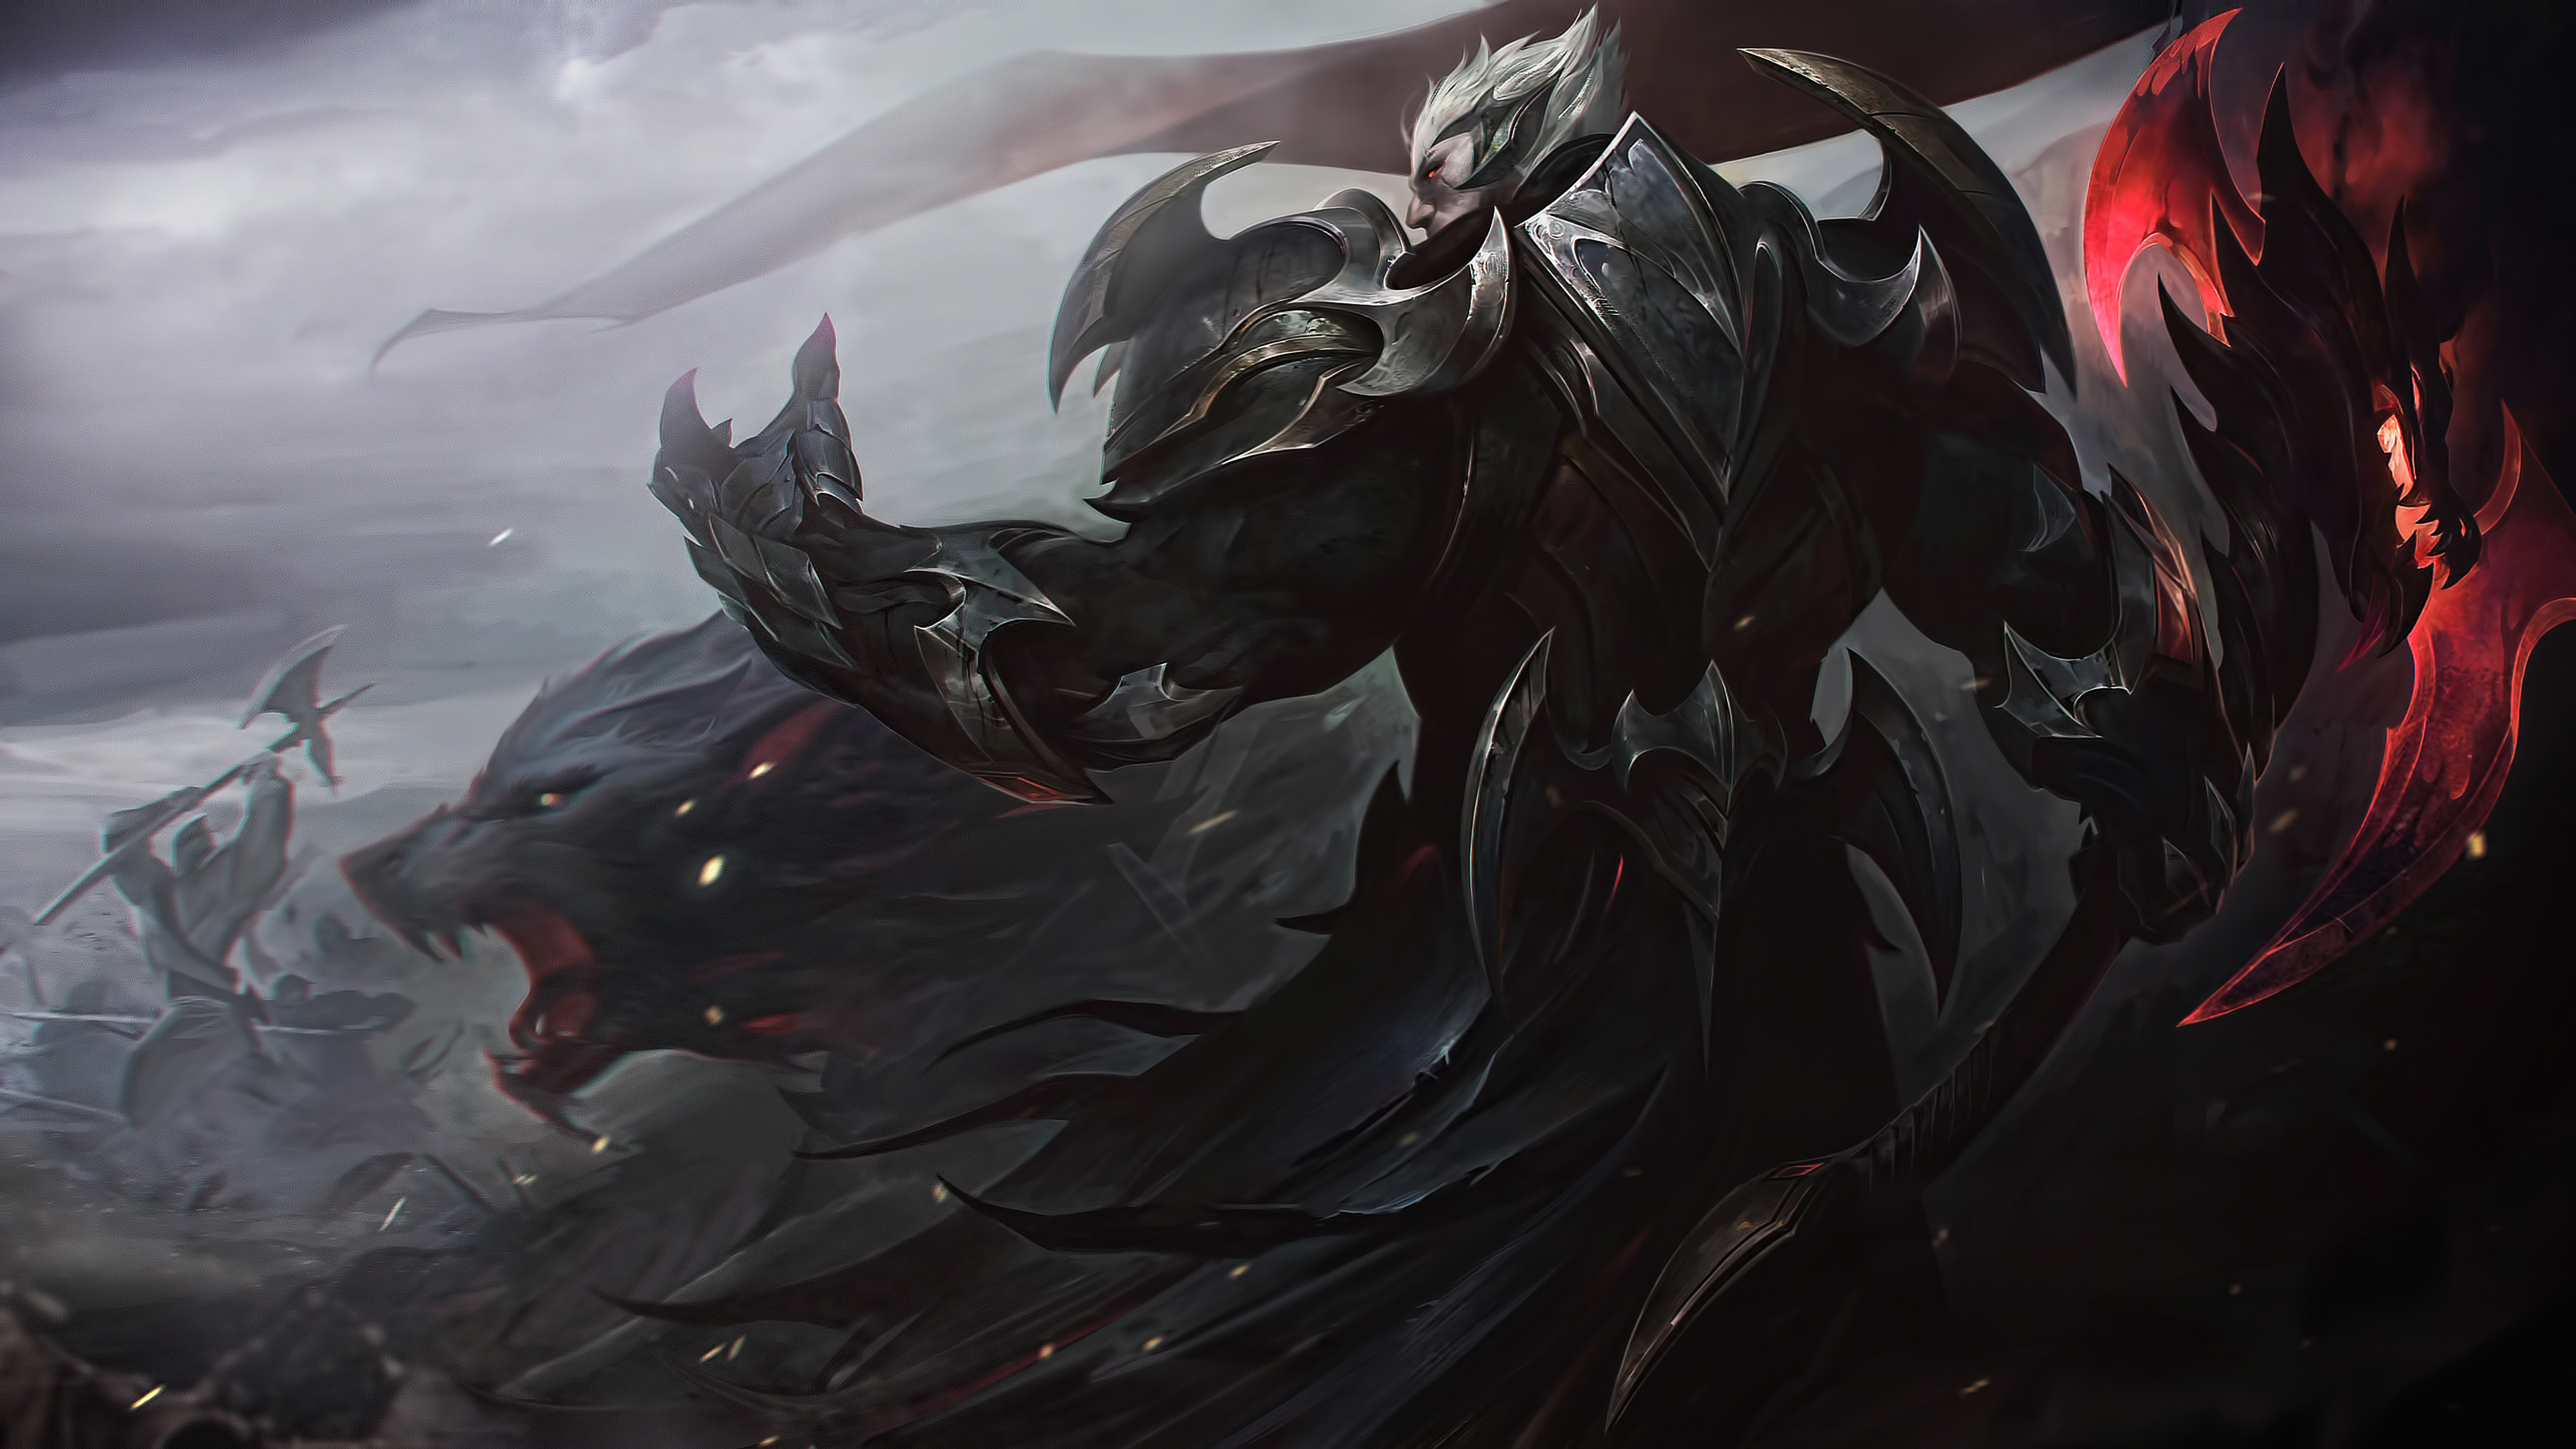 darius league of legends 4k 1537691646 - Darius League Of Legends 4k - league of legends wallpapers, hd-wallpapers, games wallpapers, digital art wallpapers, deviantart wallpapers, 4k-wallpapers